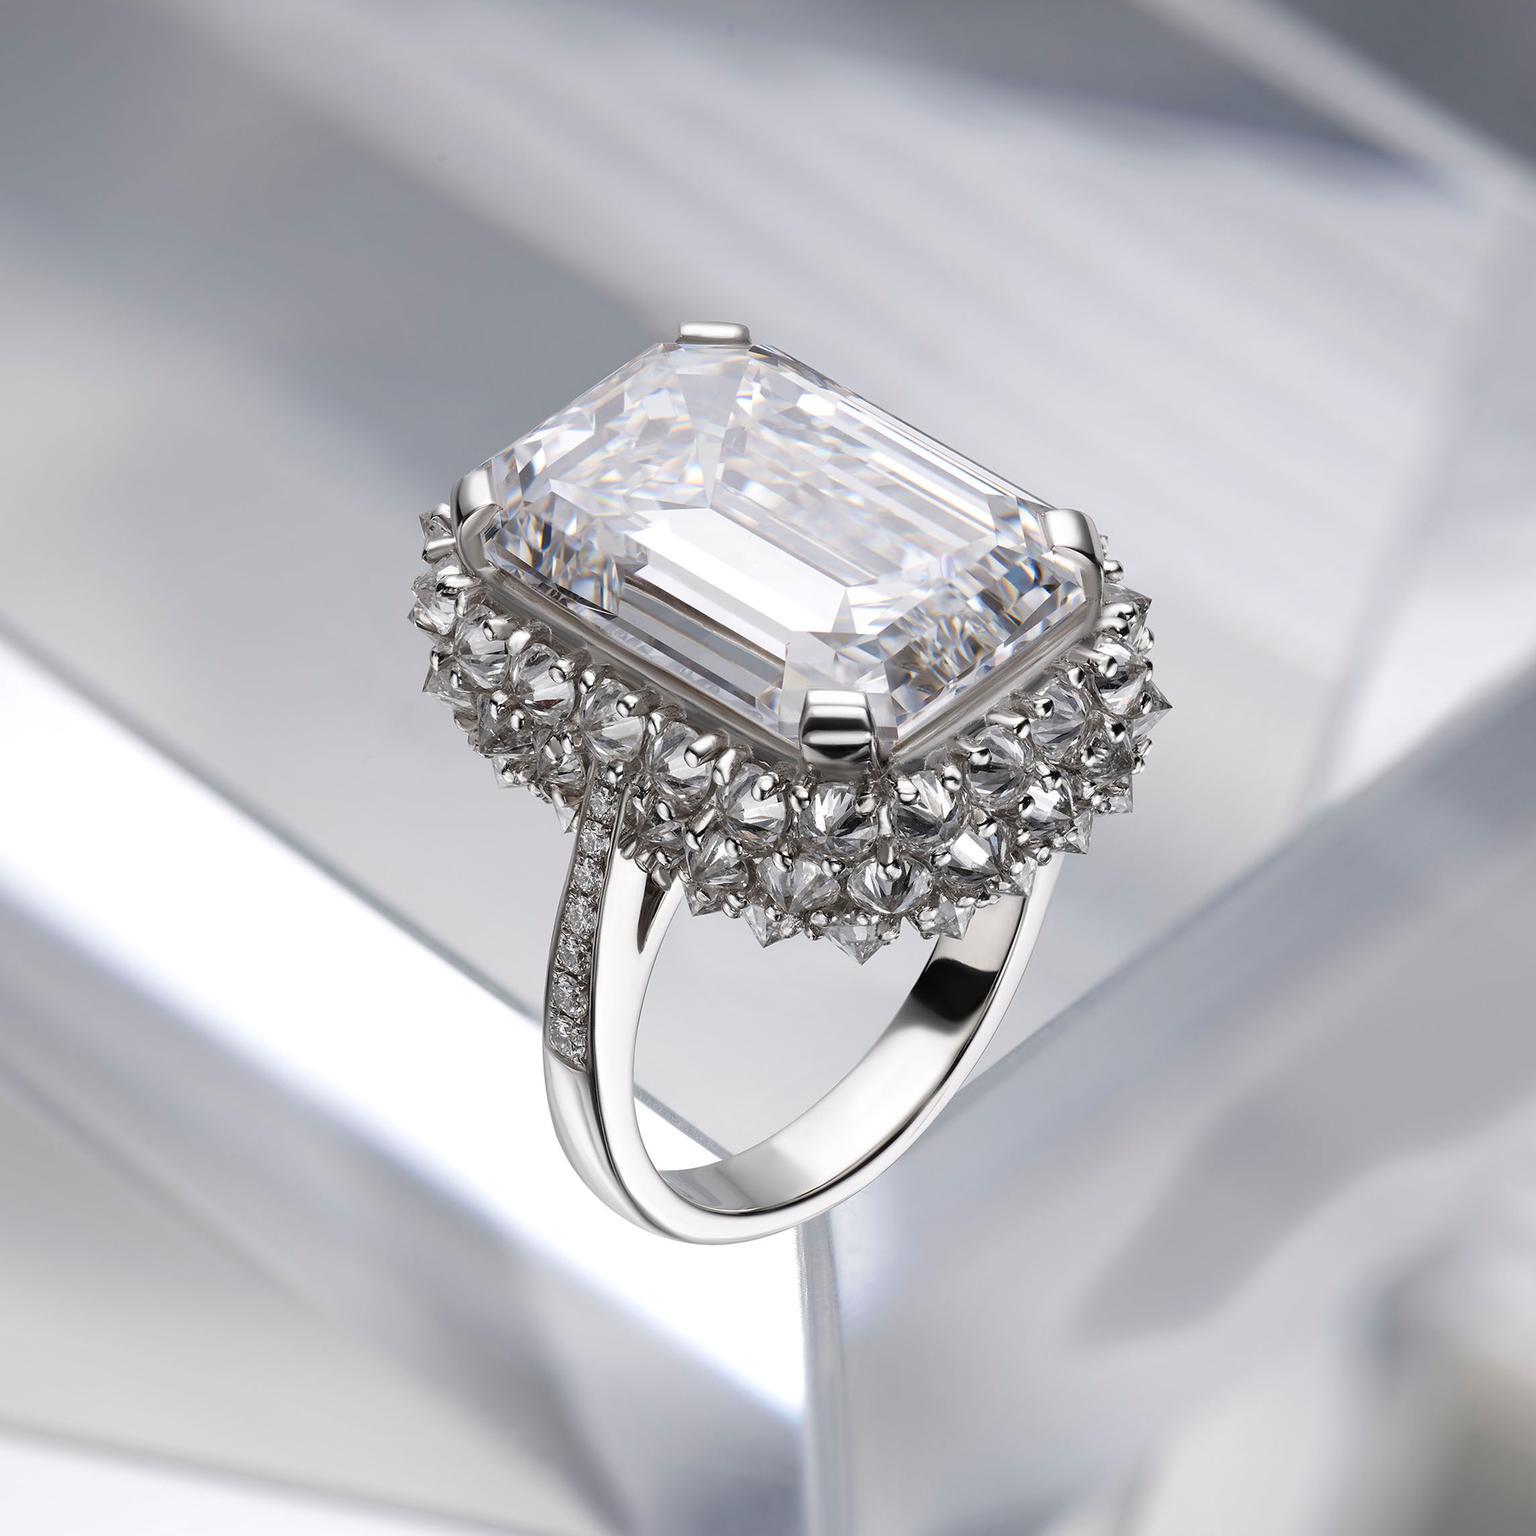 Bulgari Festa high jewellery diamond ring